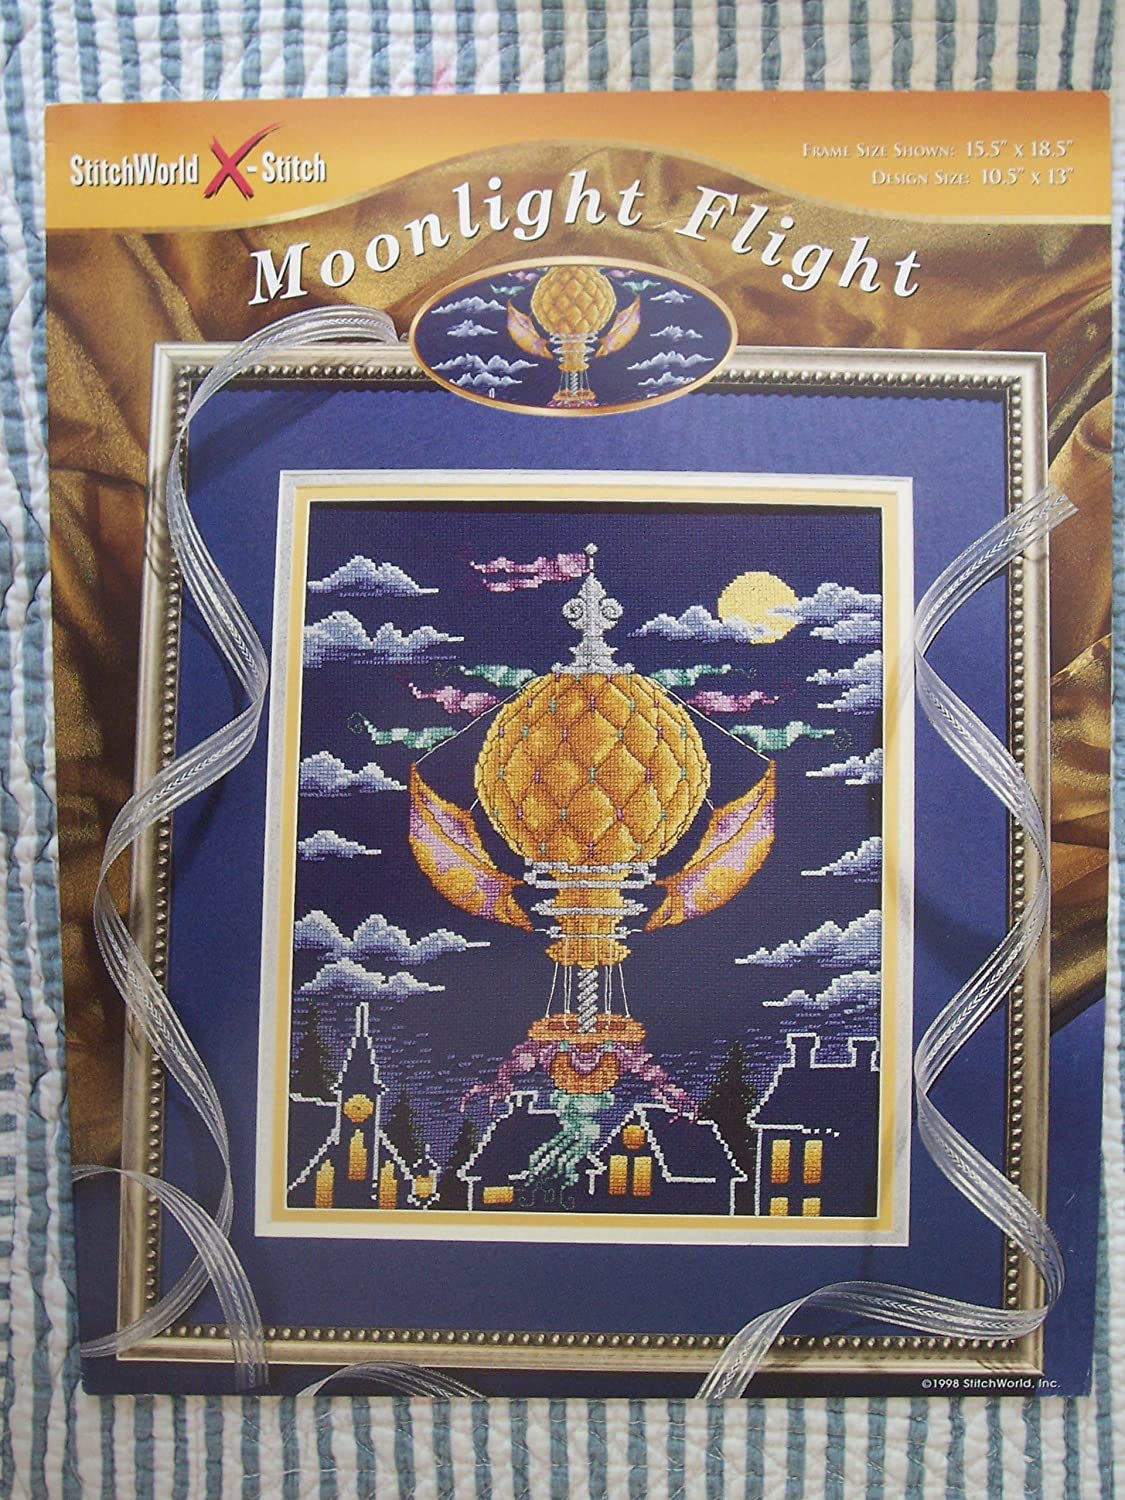 Moonlight Flight from Stitch World